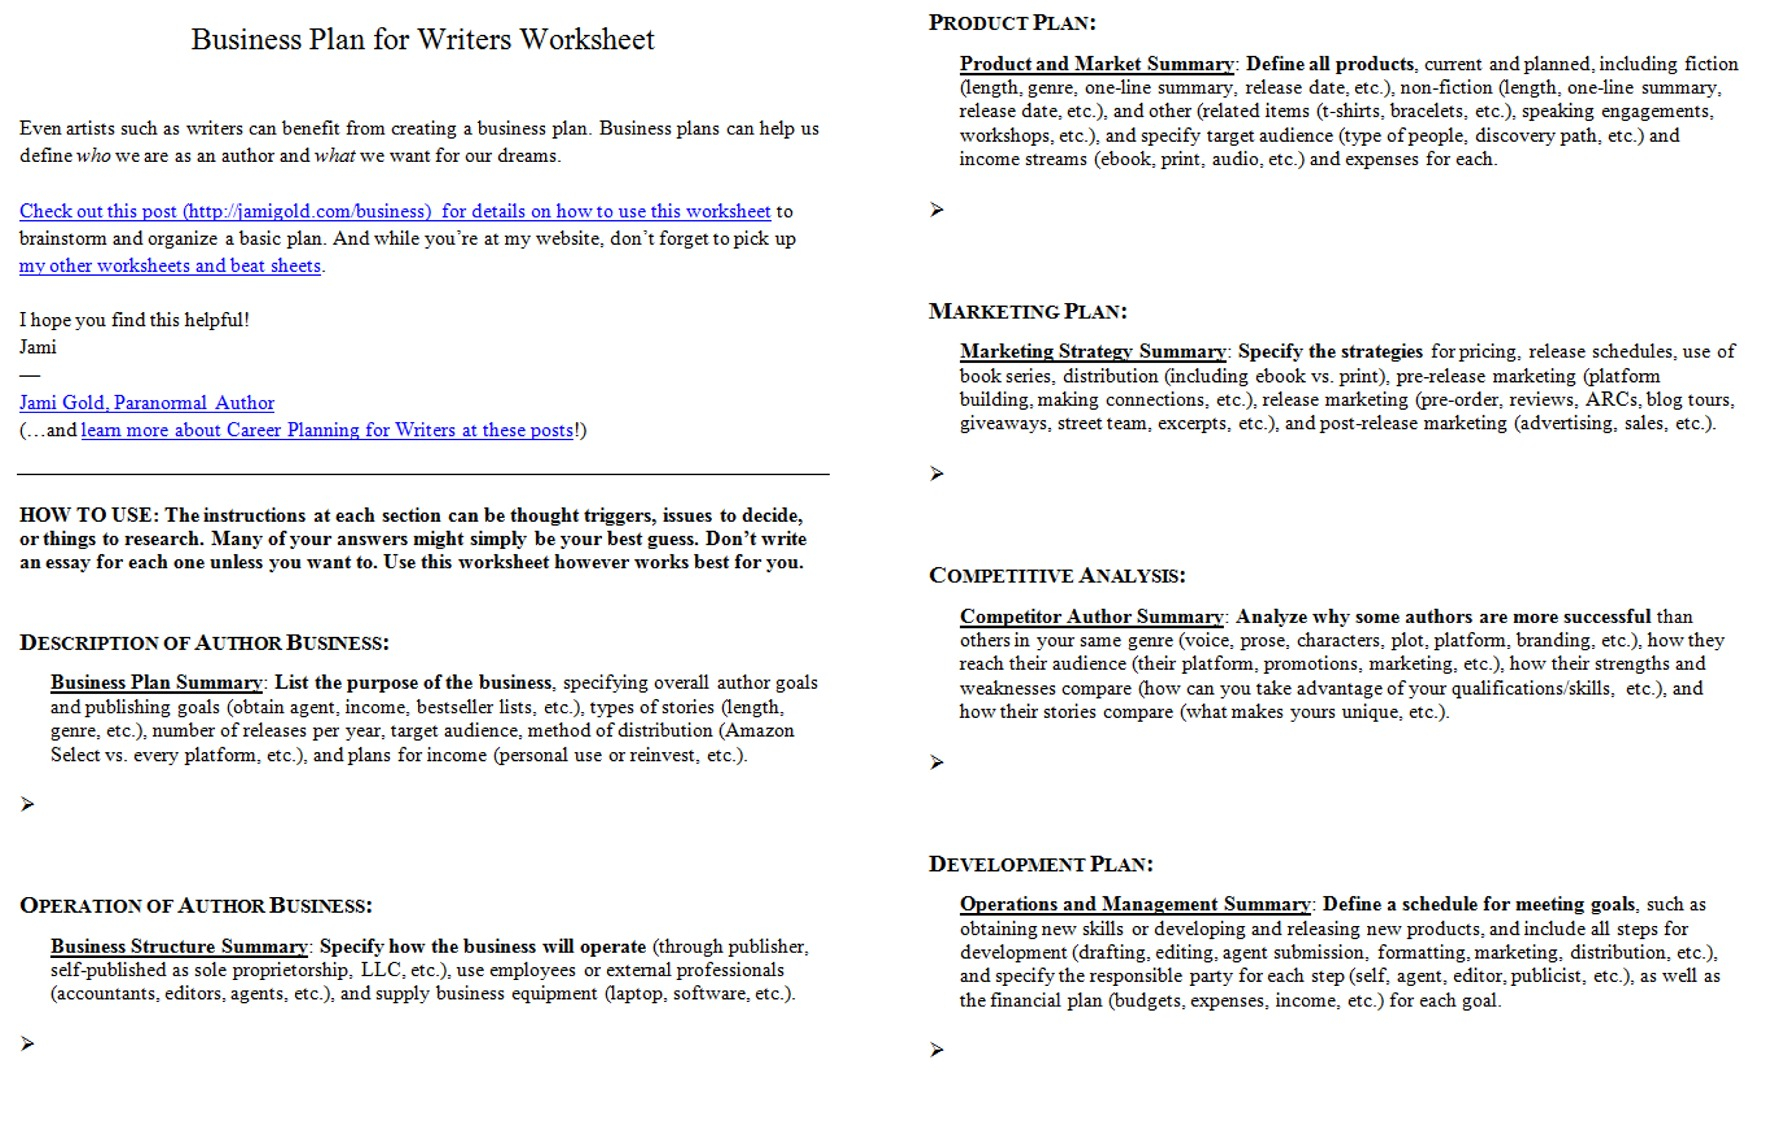 Weirdmailus  Winsome Worksheets For Writers  Jami Gold Paranormal Author With Outstanding Screen Shot Of Both Pages Of The Business Plan For Writers Worksheet With Alluring Simple Past Worksheet Also Printable Bible Worksheets Kids In Addition Worksheets For Dyslexia And Label The States Worksheet As Well As Consonance Worksheets Additionally A E Worksheets From Jamigoldcom With Weirdmailus  Outstanding Worksheets For Writers  Jami Gold Paranormal Author With Alluring Screen Shot Of Both Pages Of The Business Plan For Writers Worksheet And Winsome Simple Past Worksheet Also Printable Bible Worksheets Kids In Addition Worksheets For Dyslexia From Jamigoldcom